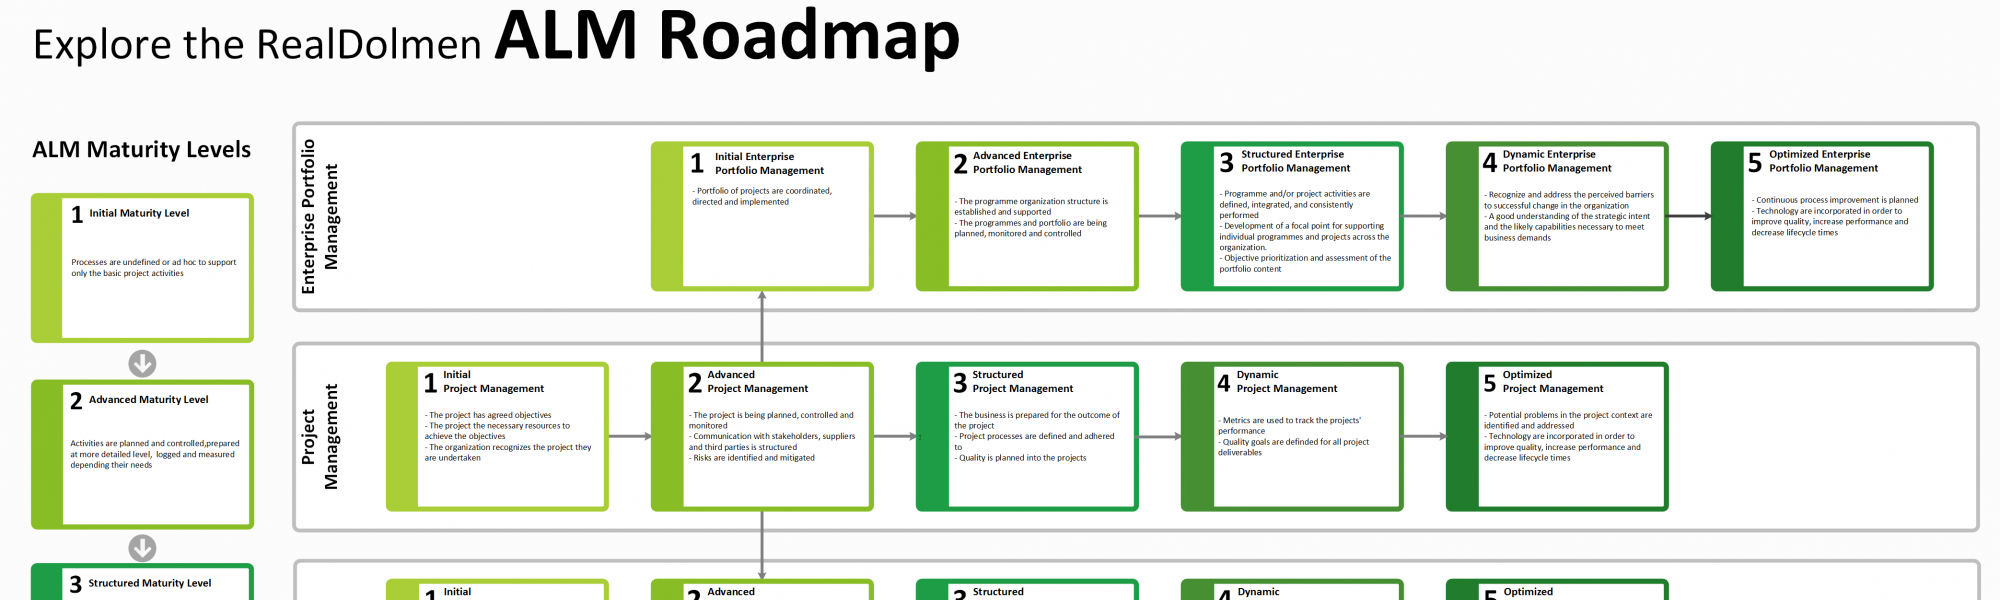 Explore the Realdolmen ALM Roadmap